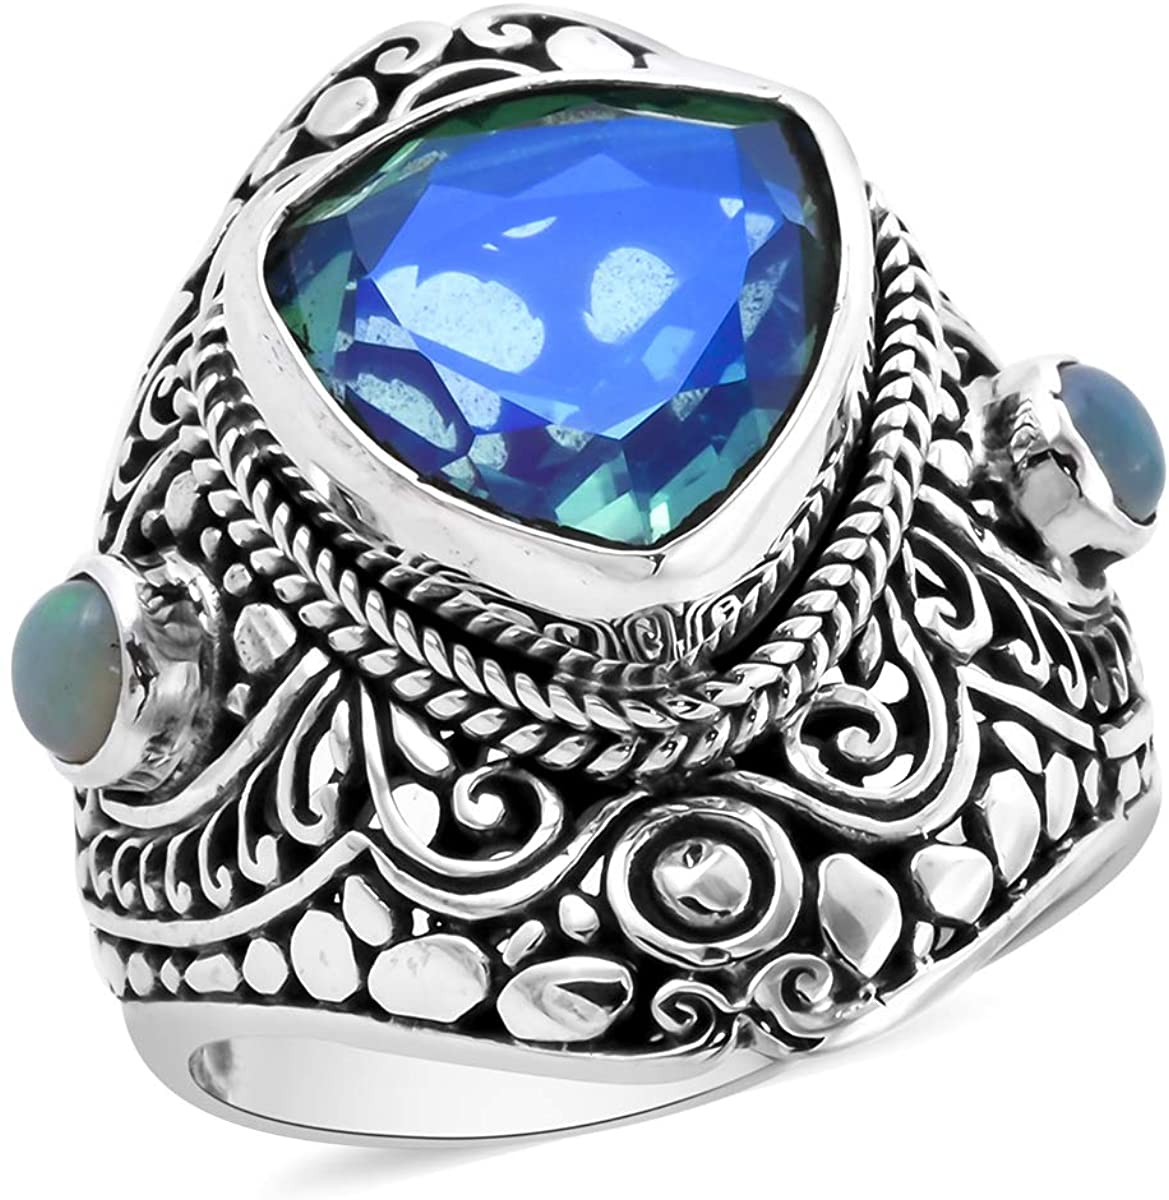 BALI LEGACY 925 Sterling Silver Trillion Peacock Triplet Quartz Opal Promise Ring Anniversary Jewelry for Women Size 8